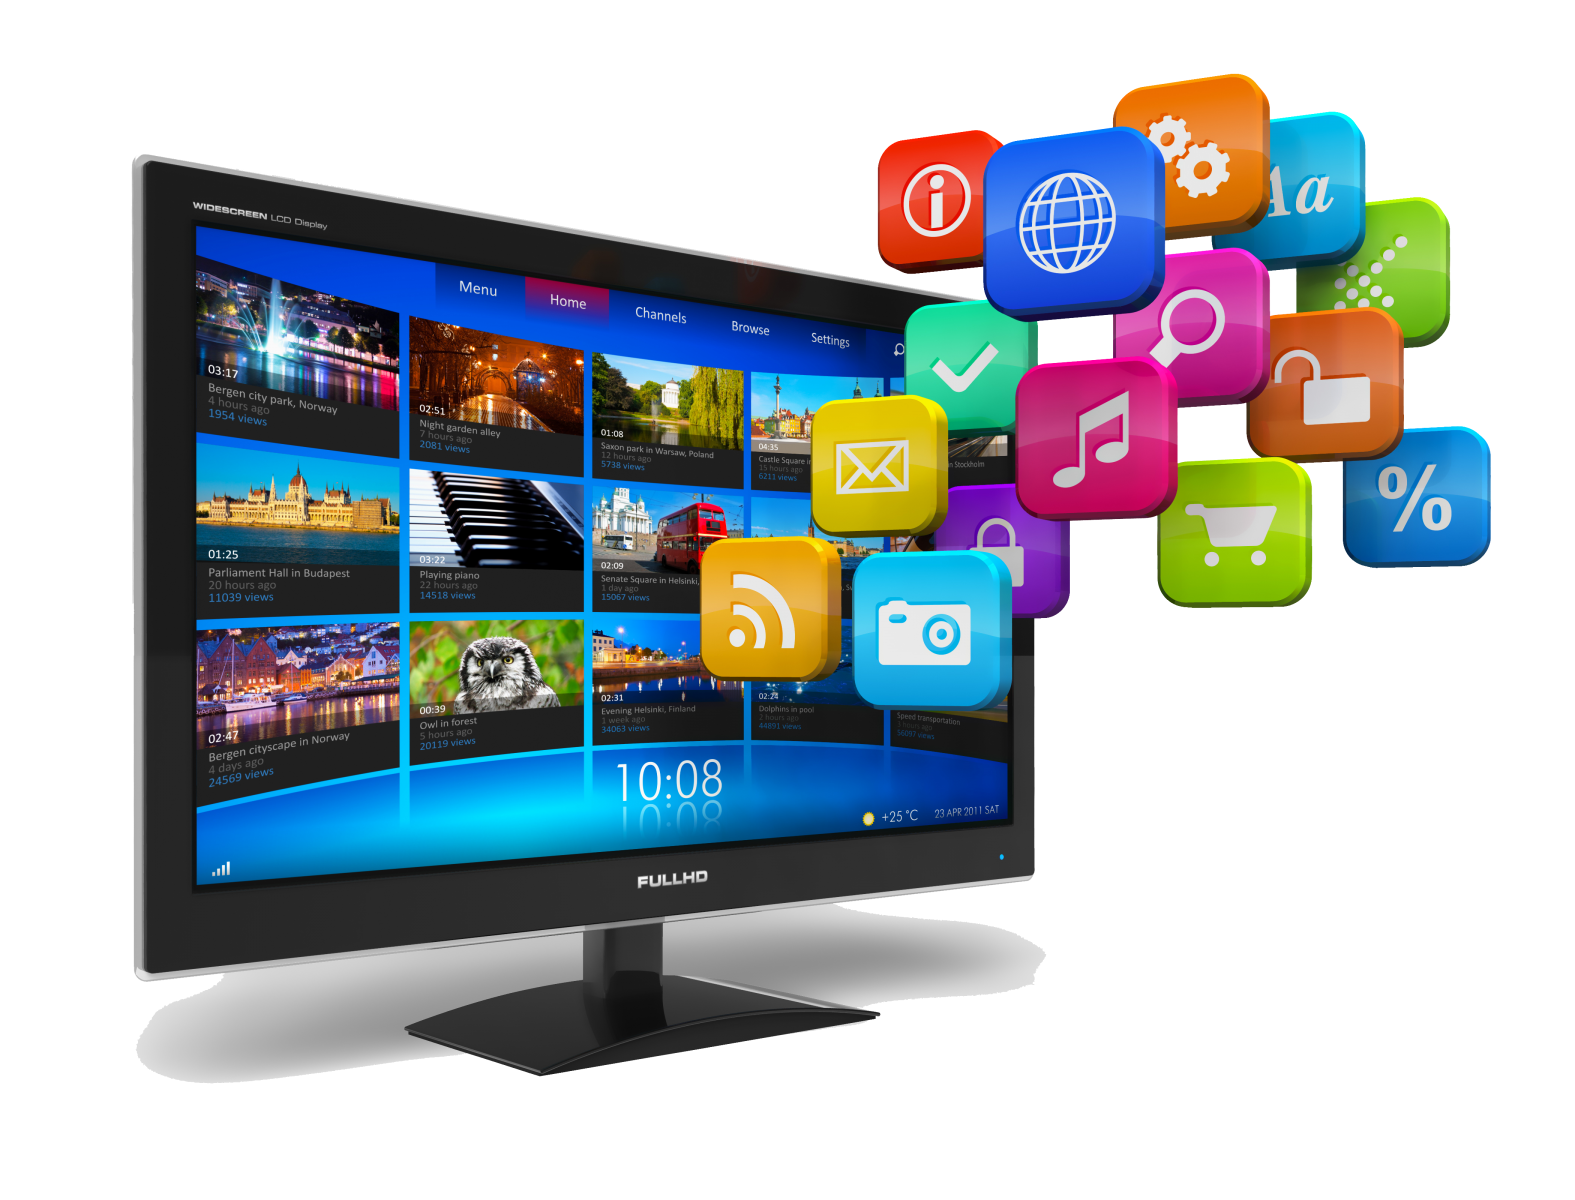 HOW TO INSTALL APPS IN YOUR SMART TV - Talk Sync